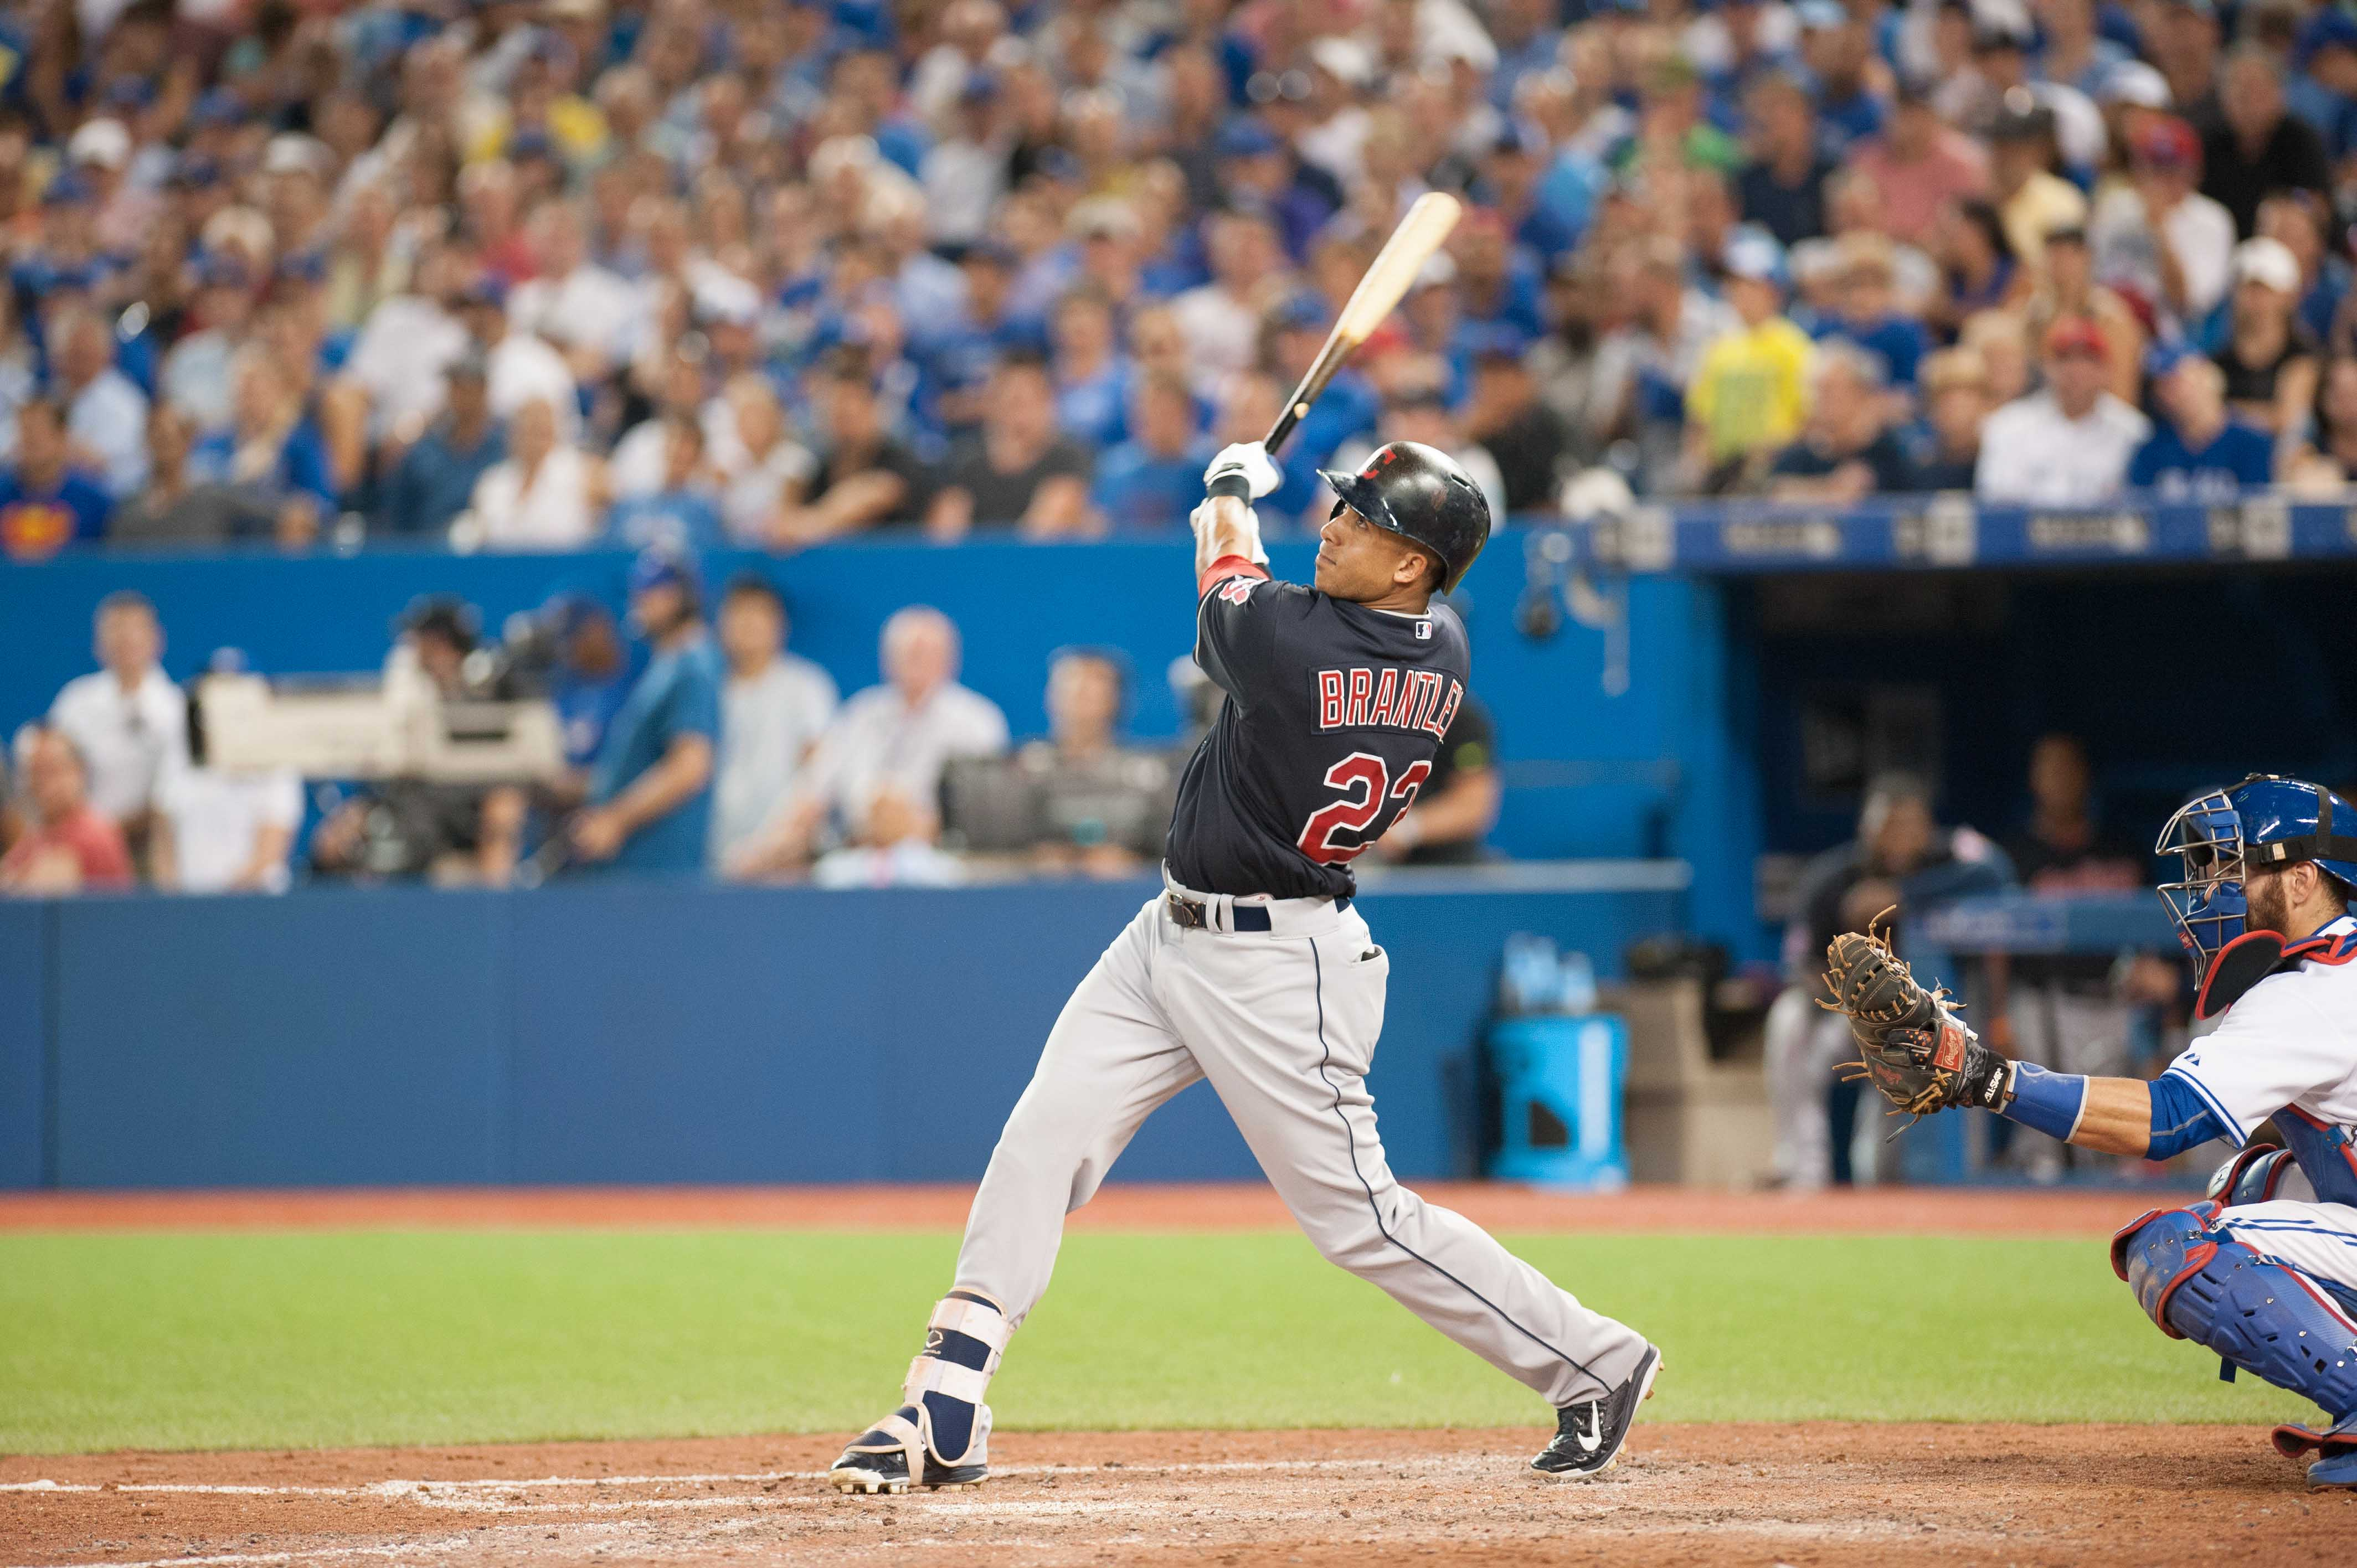 Maybe, just maybe, Michael Brantley will start on Opening Day